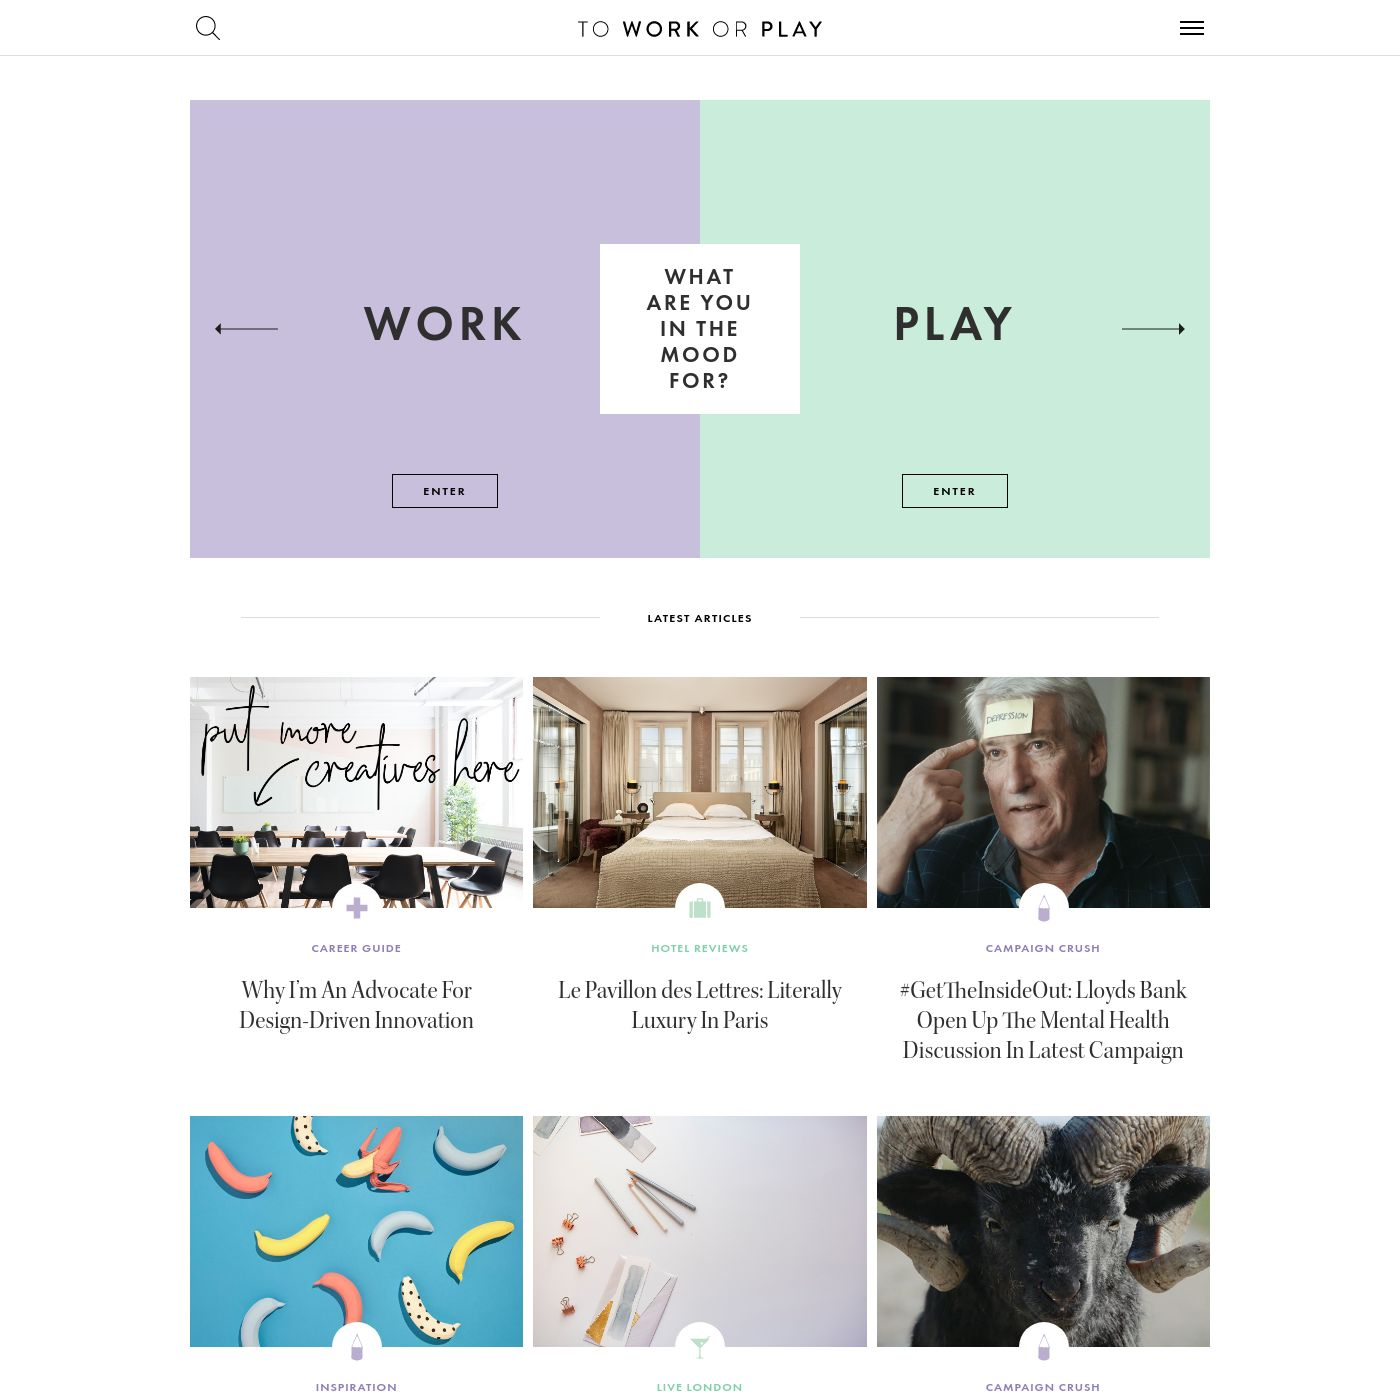 To Work Or Play | A blog of two halves: Lifestyle guidance for city-savvy socialites, and insight, inspiration and opinion for ad-curious folk.